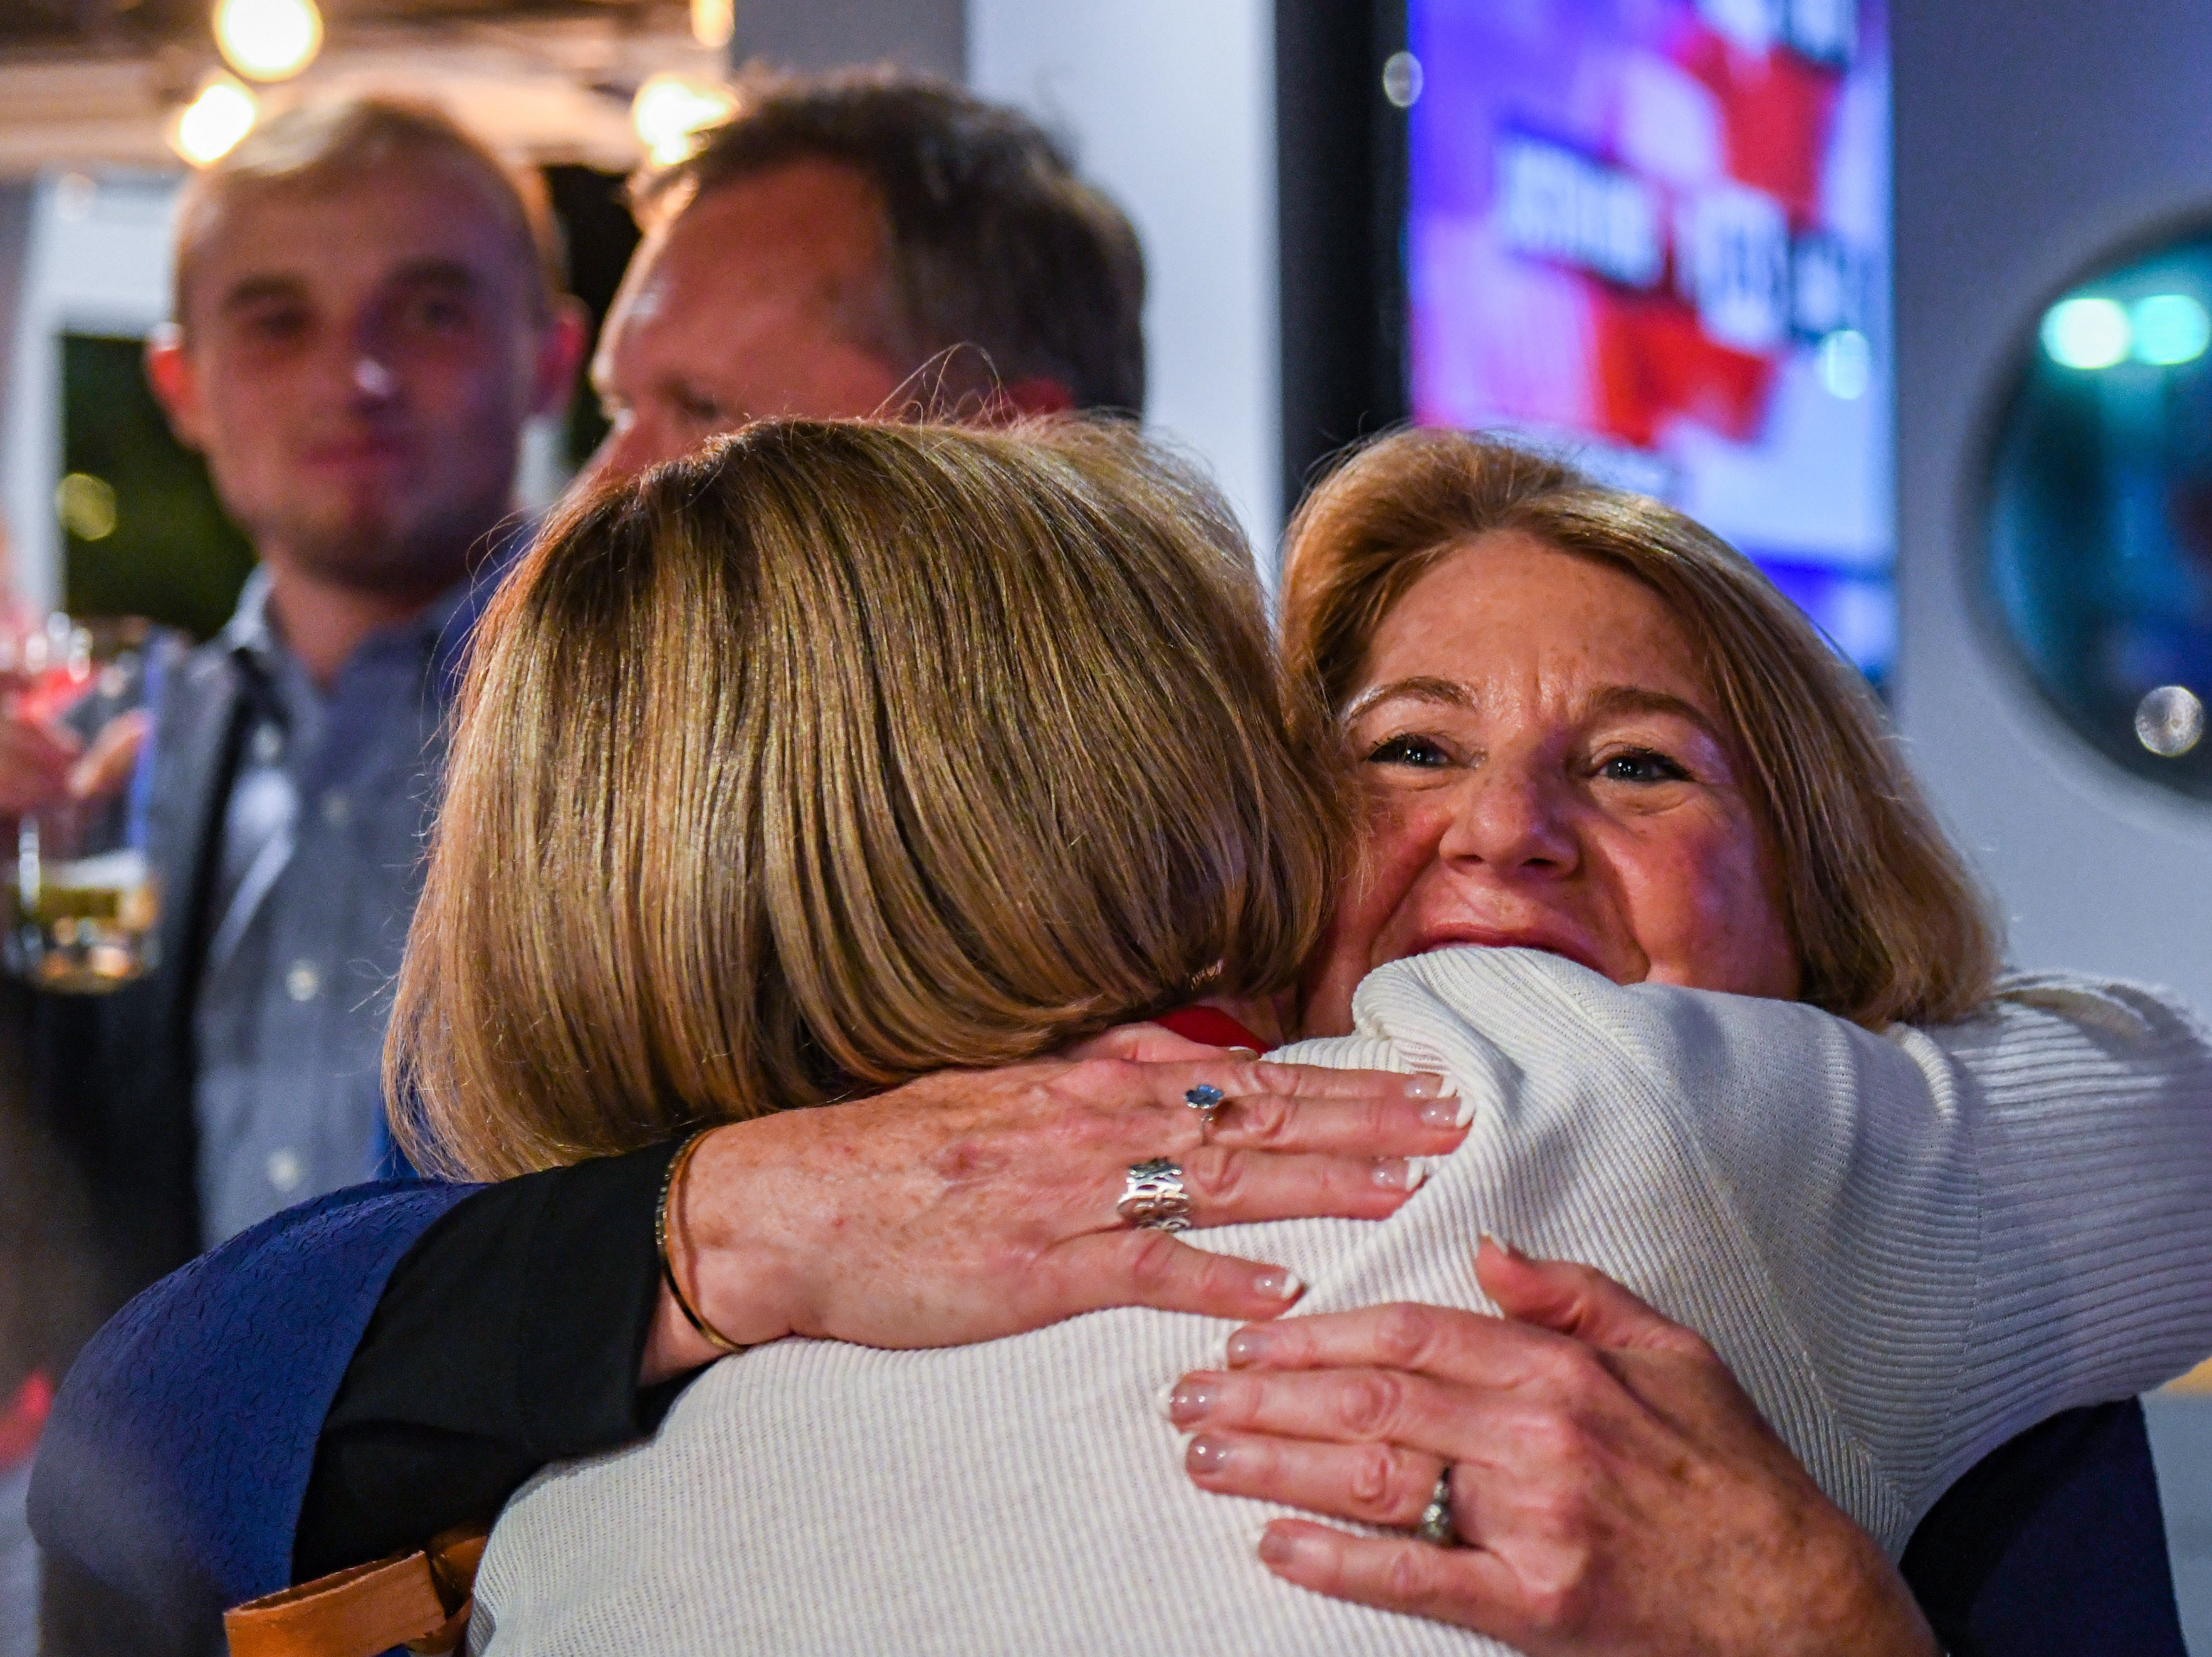 Republican Mary Beth Carozza greets supporters at her Ocean City watch party on Tuesday, Nov 6, 2018. Excitement grew throughout the night as Carozza was elected the new Maryland state senator in District 38, unseating incumbent Democrat Jim Mathias.